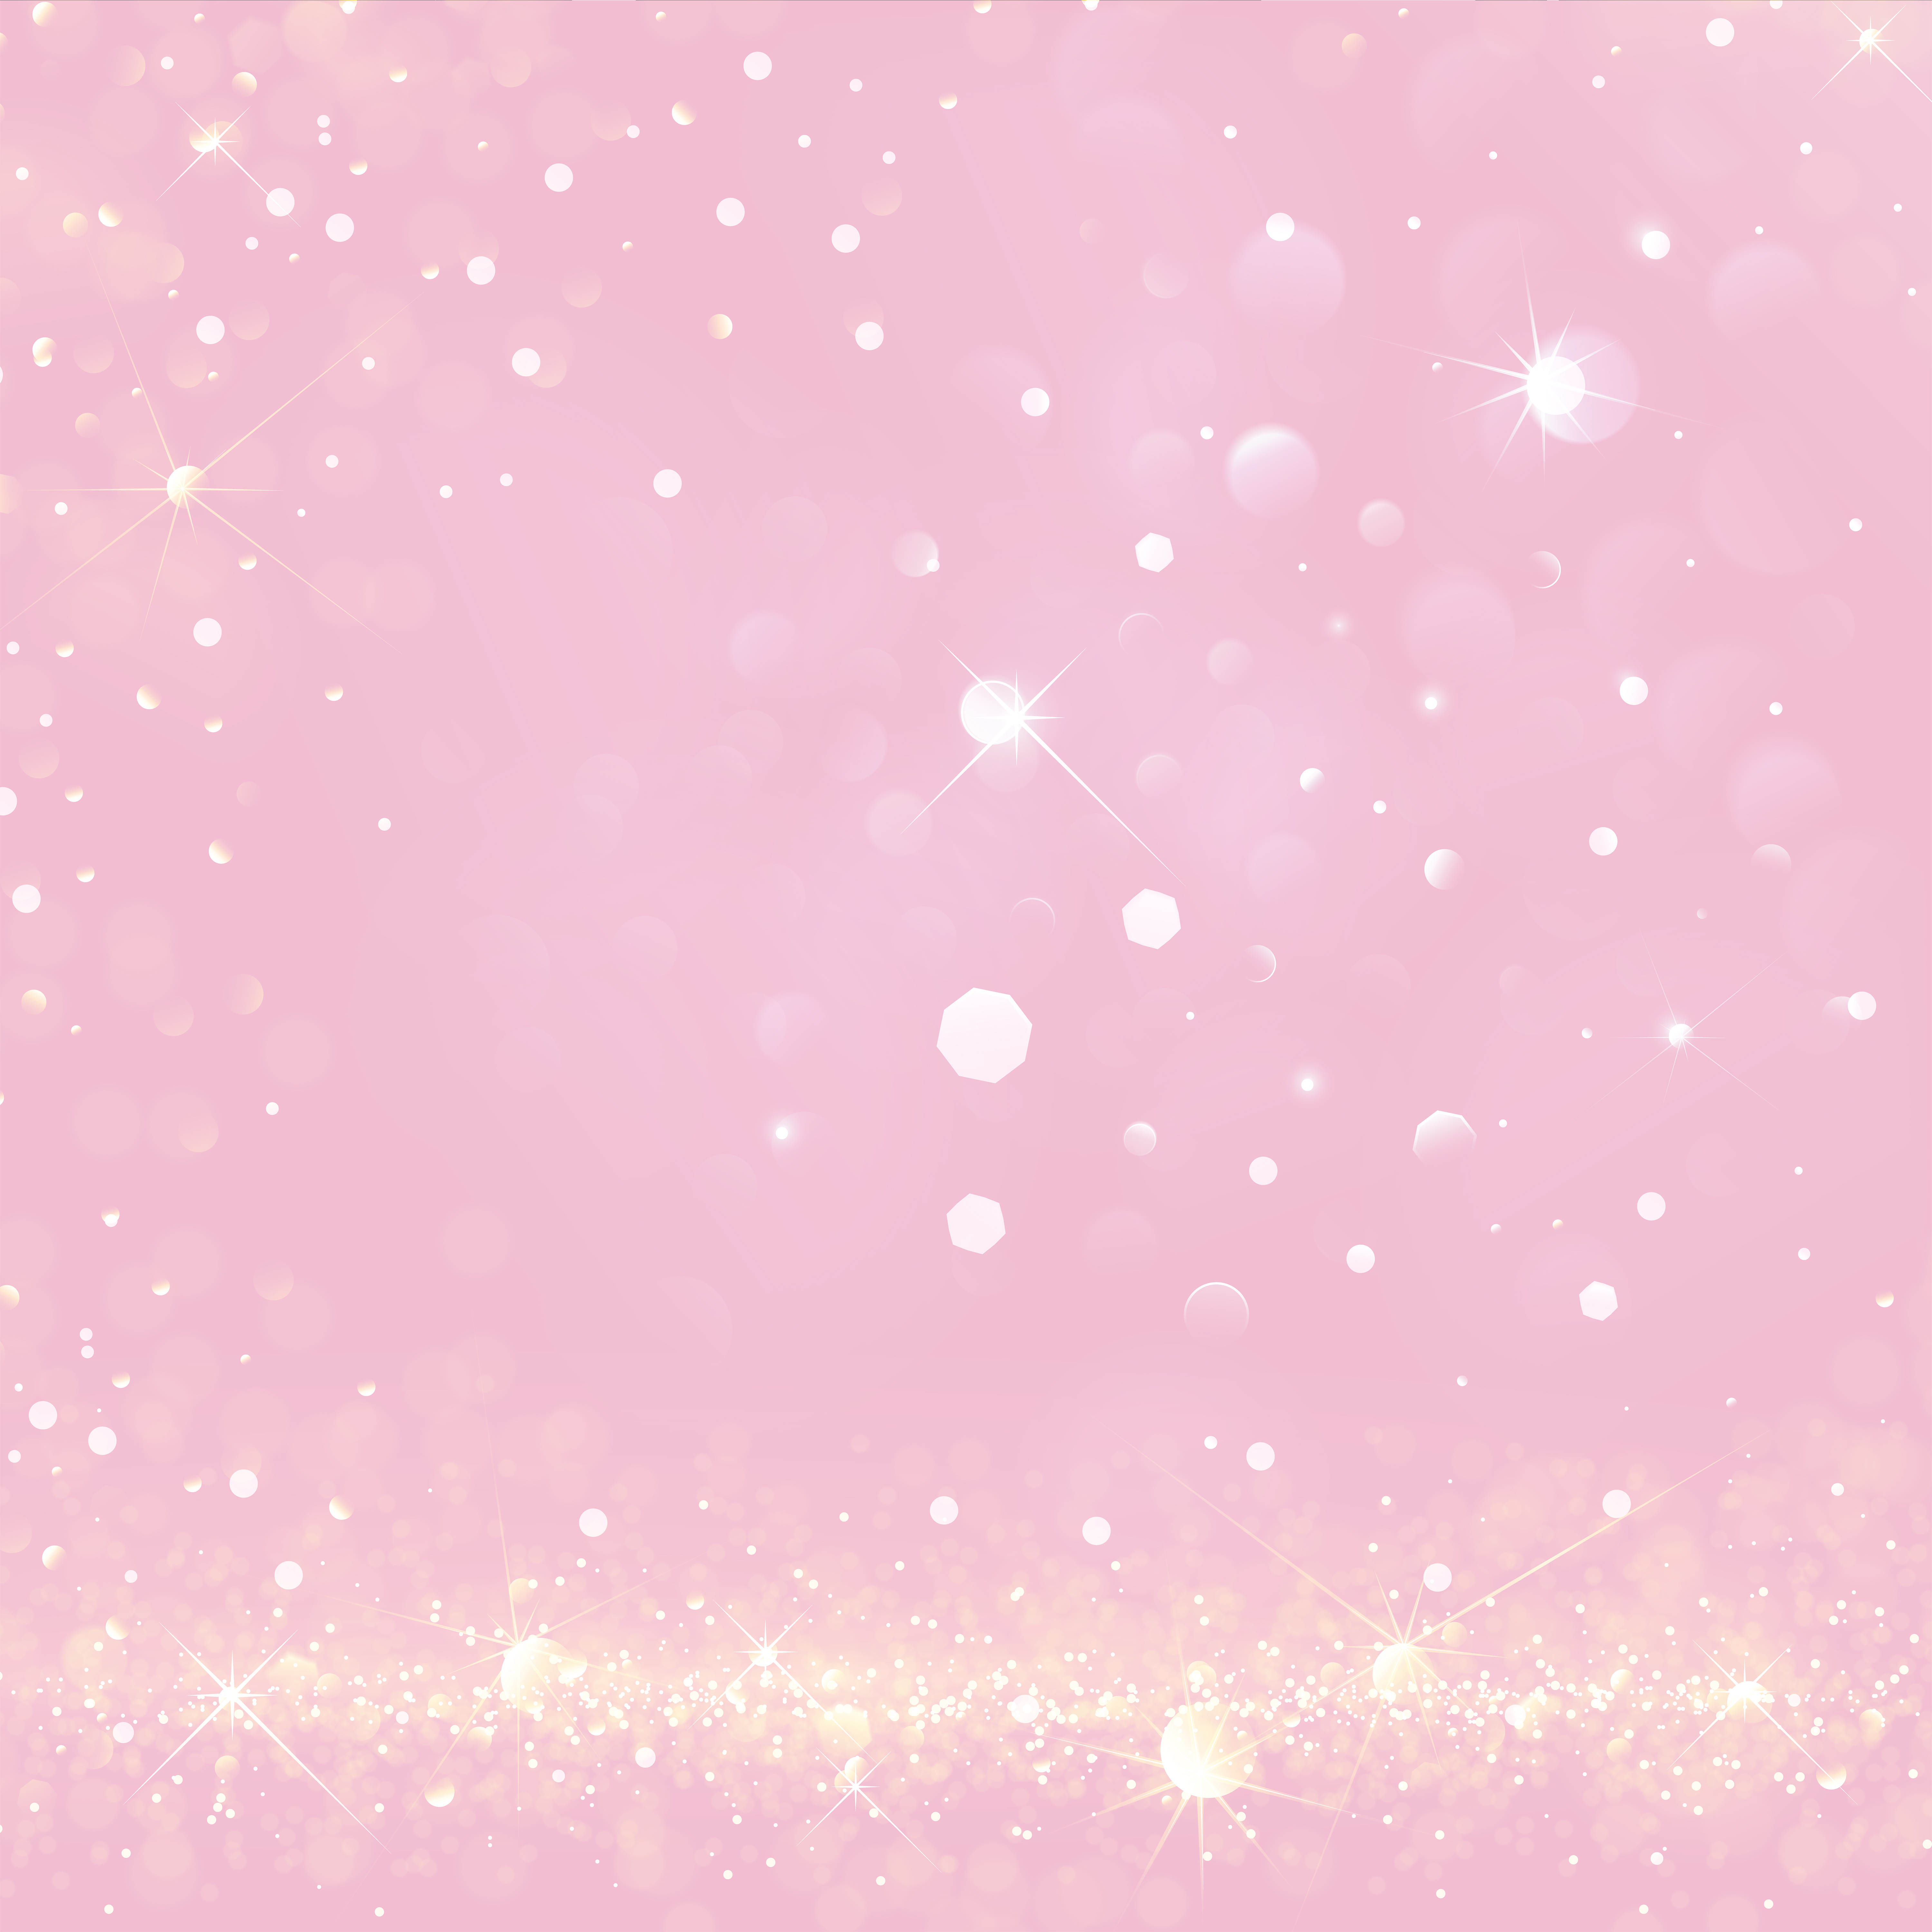 Background Pink Png - Pink Shining Background​ | Gallery Yopriceville - High-Quality ...